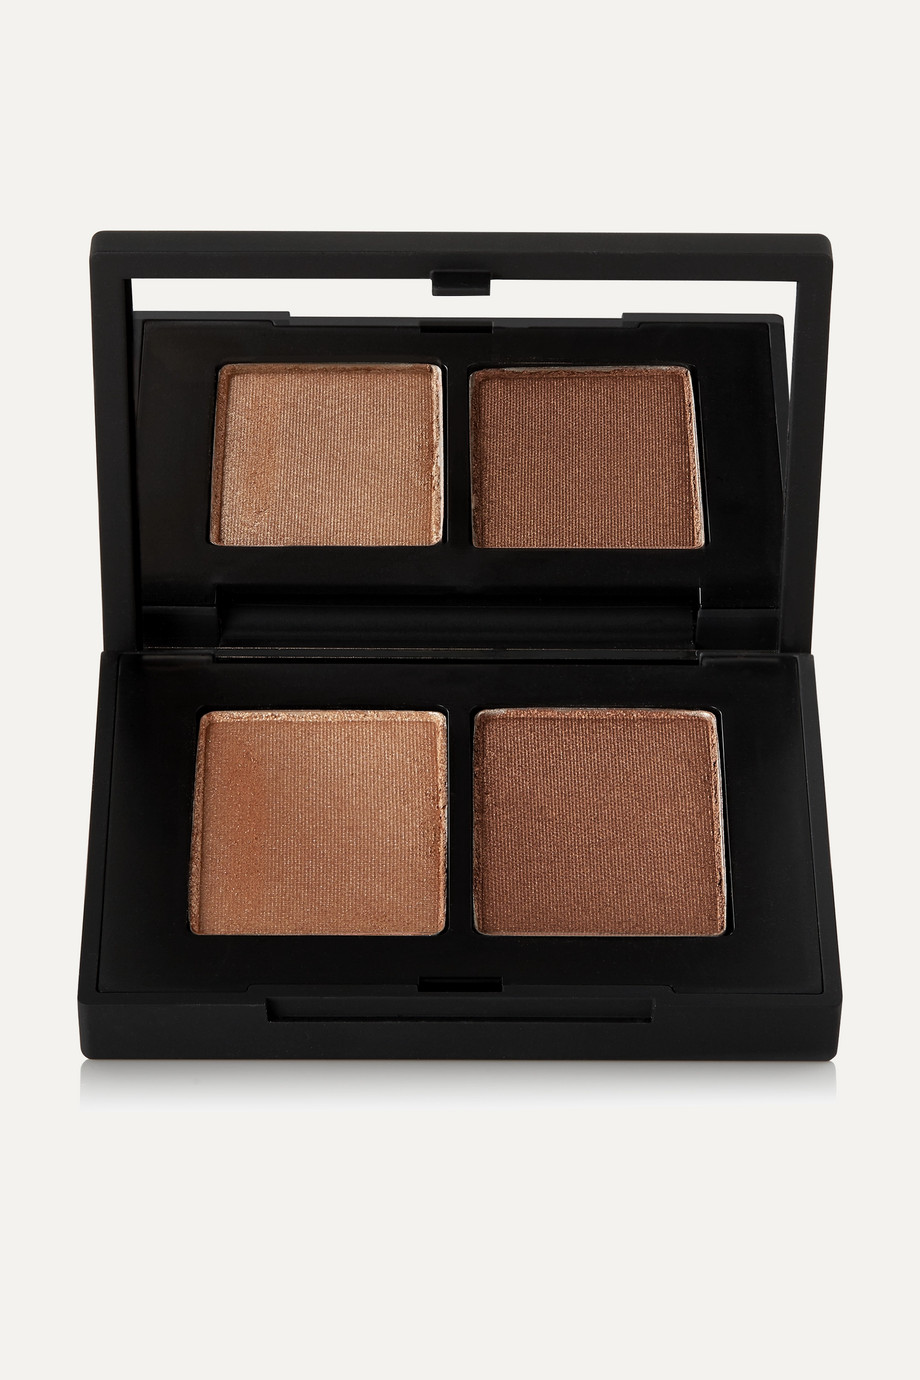 NARS Duo Eyeshadow - Isolde